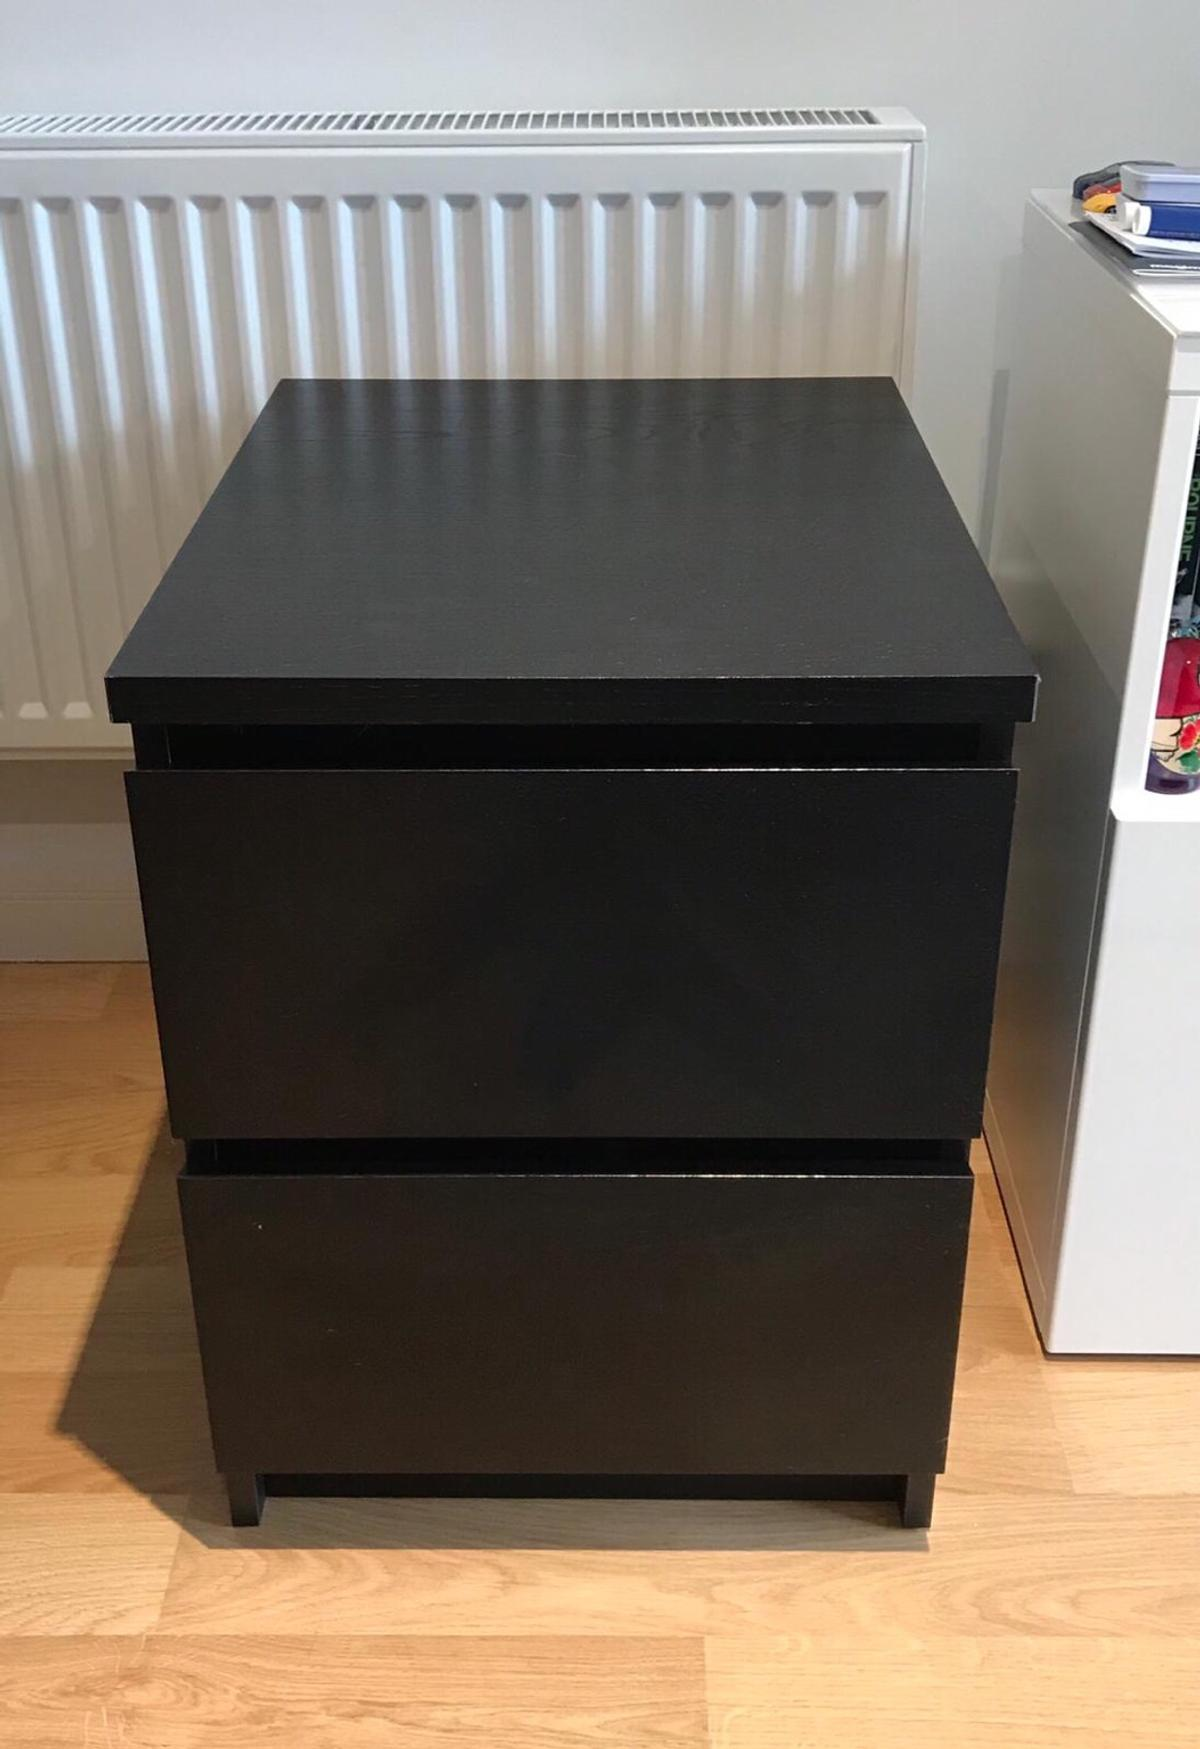 Ikea Malm Bedside Table Black Brown In Se23 London For